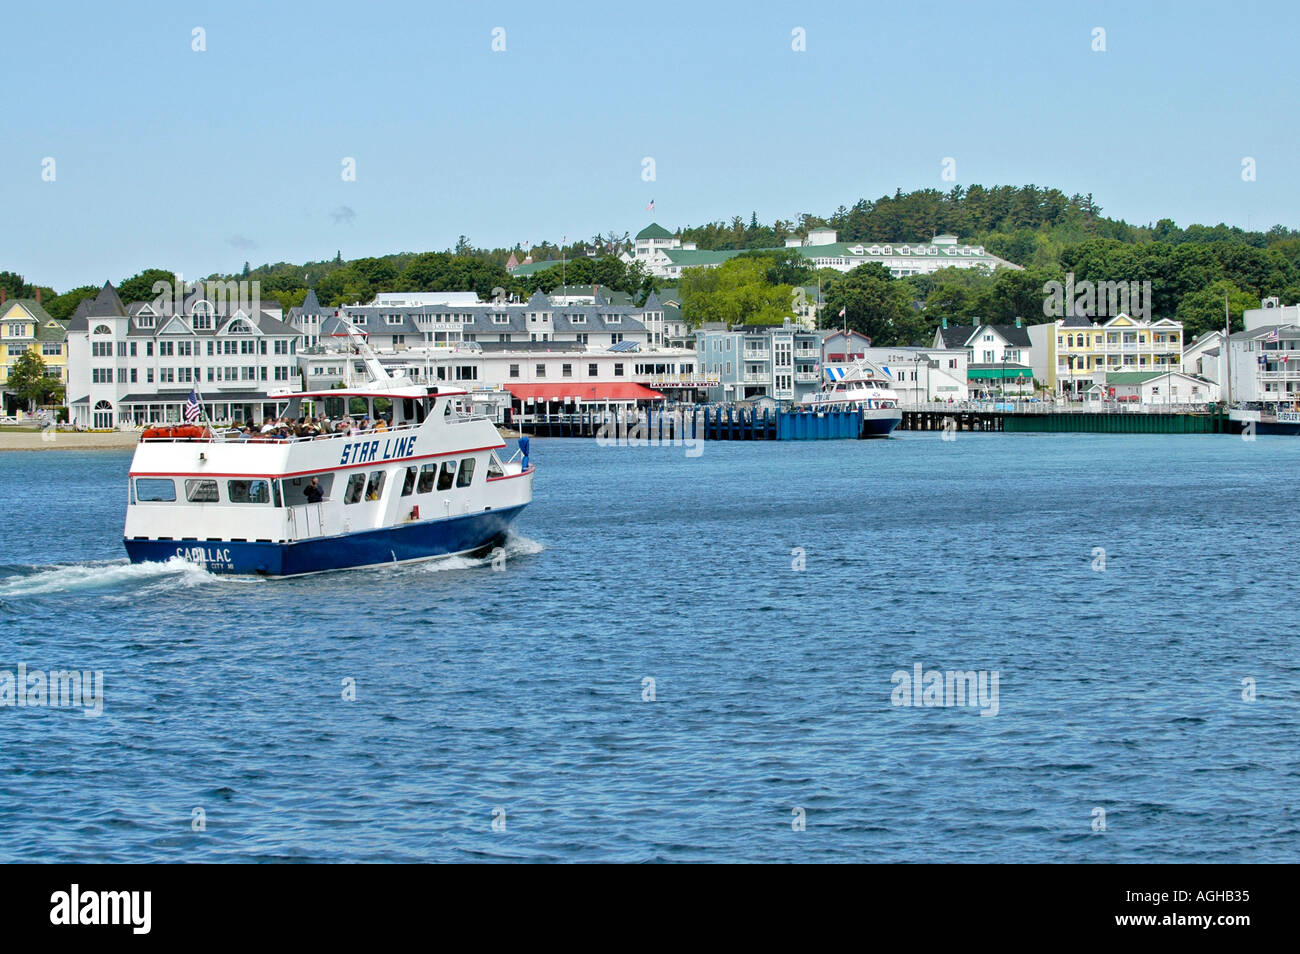 High seed boats transports tourists to mackinac Mackinaw Island in Michigan between the Upper and Lower Peninsula in Lake Huron - Stock Image